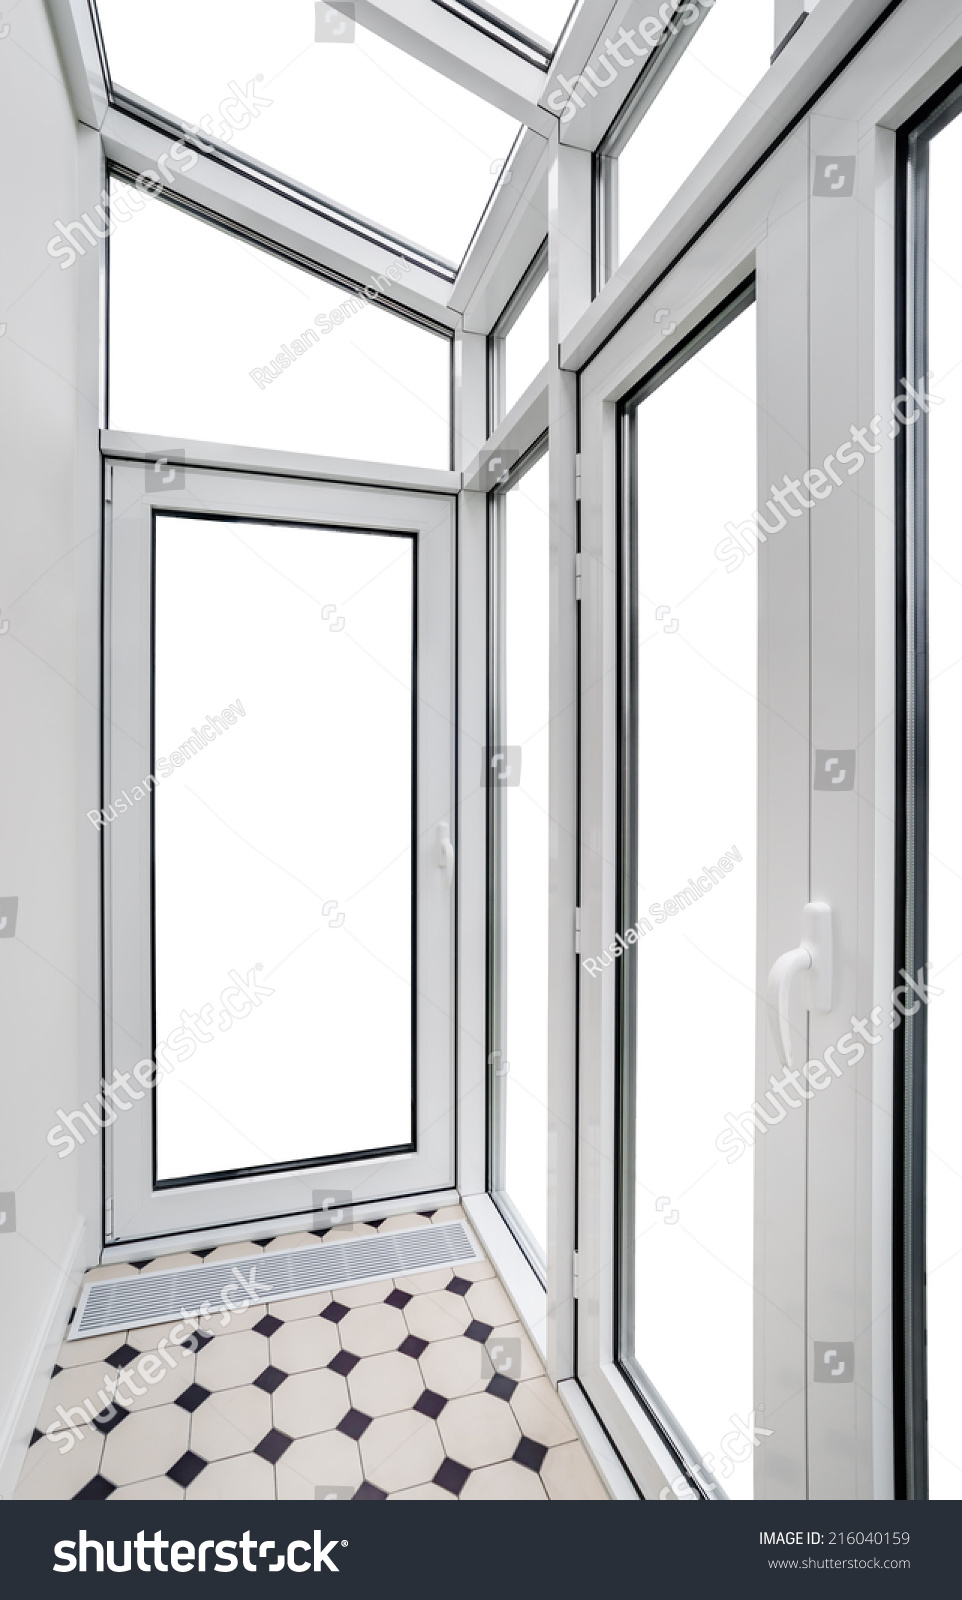 Plastic window stock photo 216040159 shutterstock for Window plastic